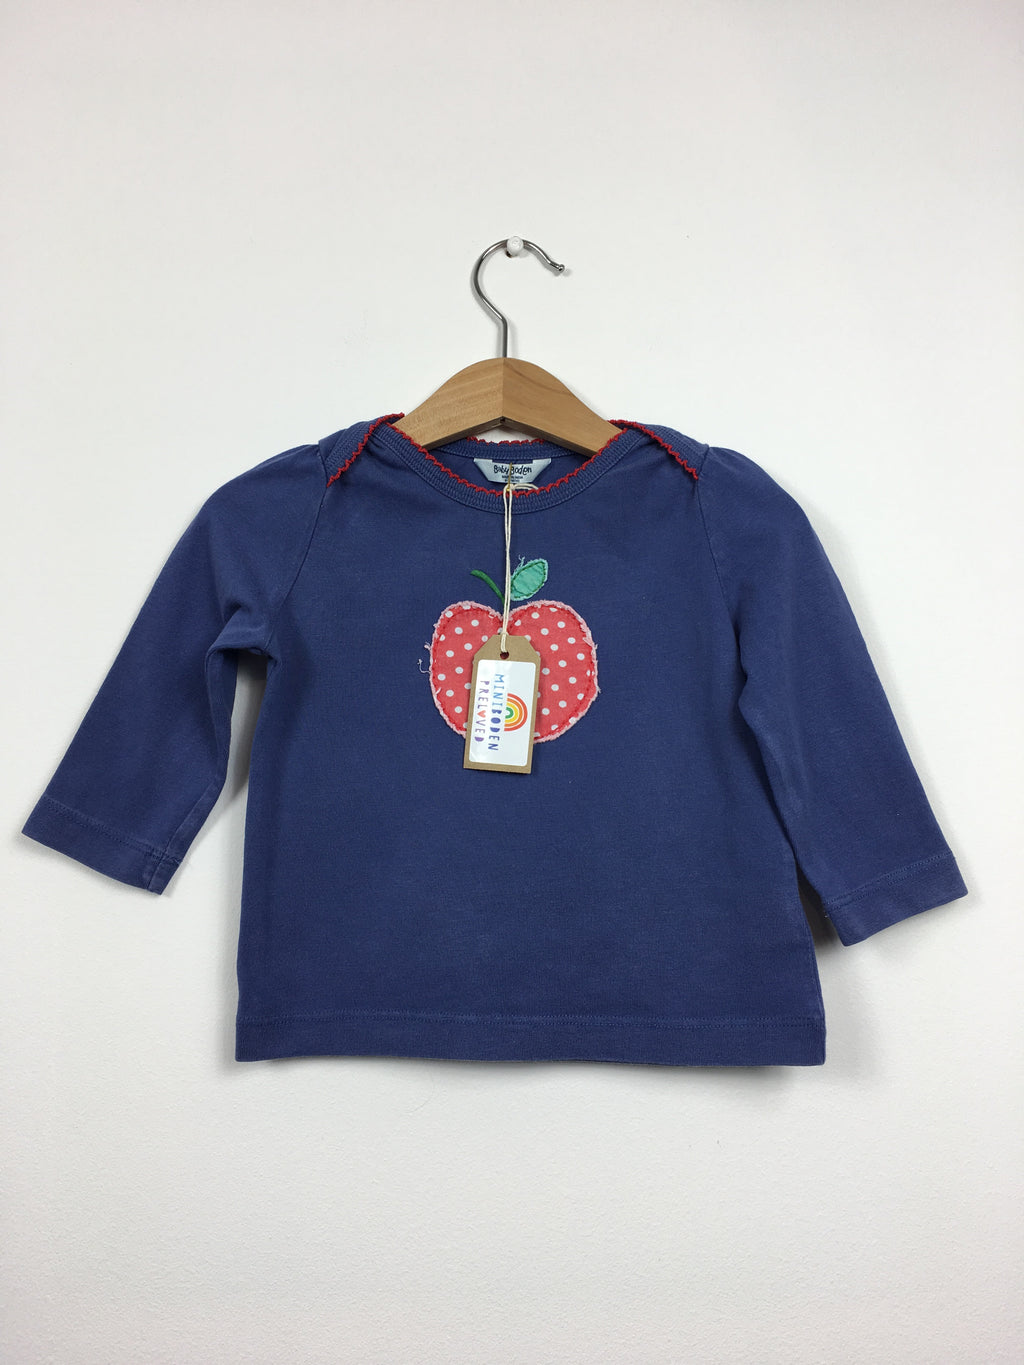 Fun Appliqué Apple Top (6-12 Months)